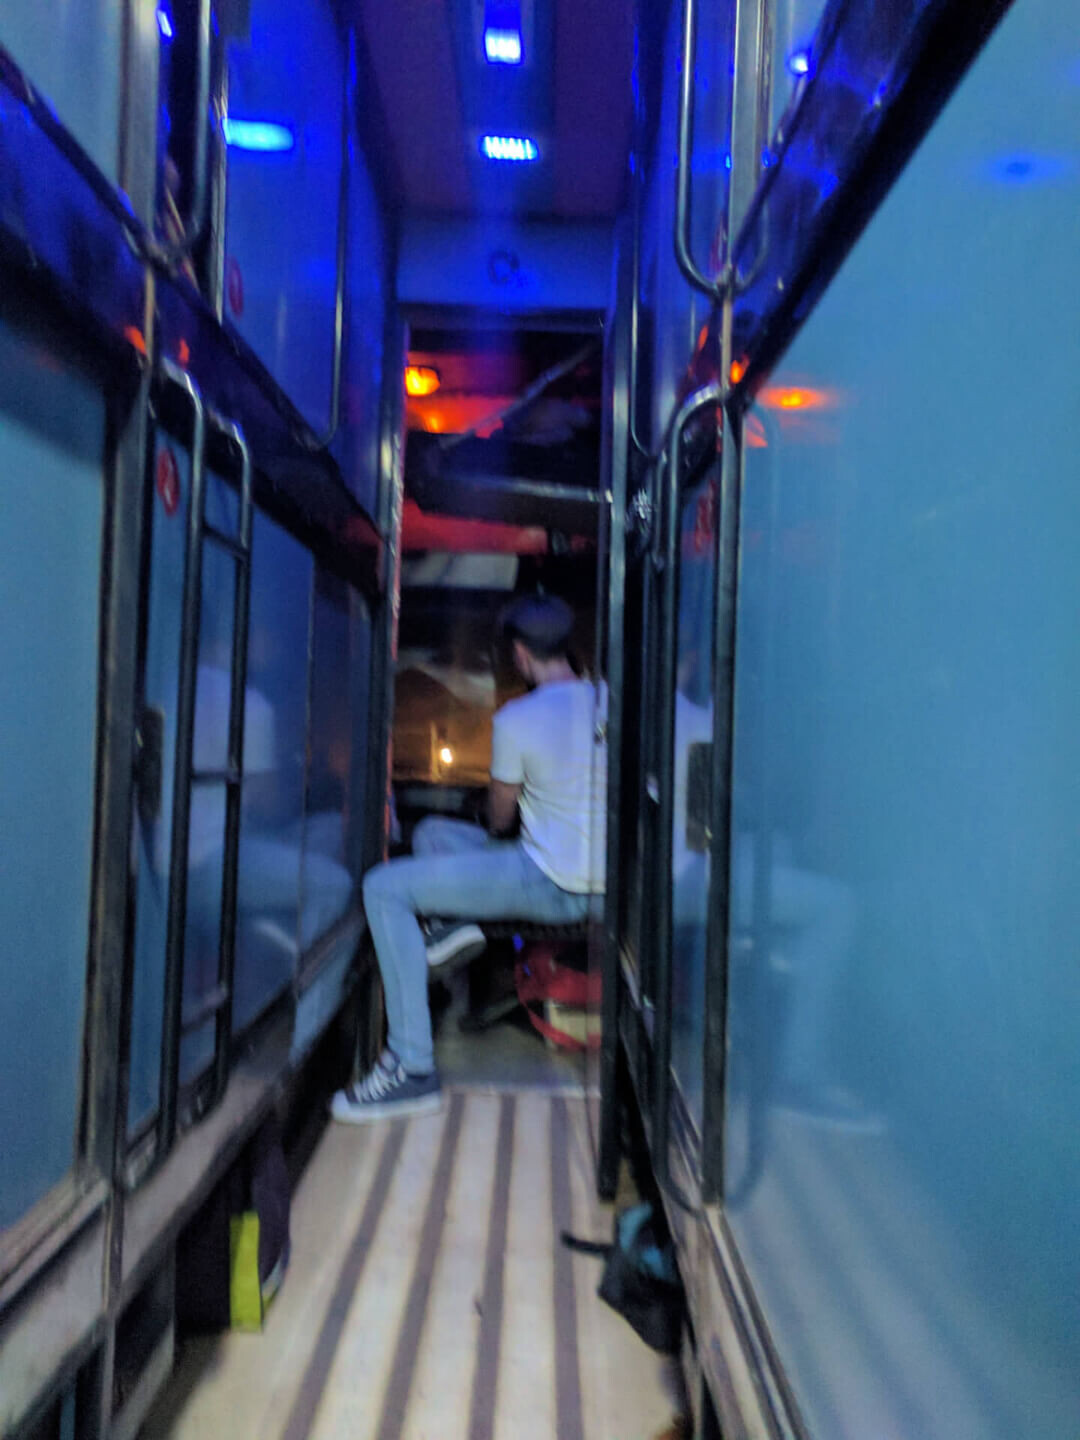 Indian sleeper bus